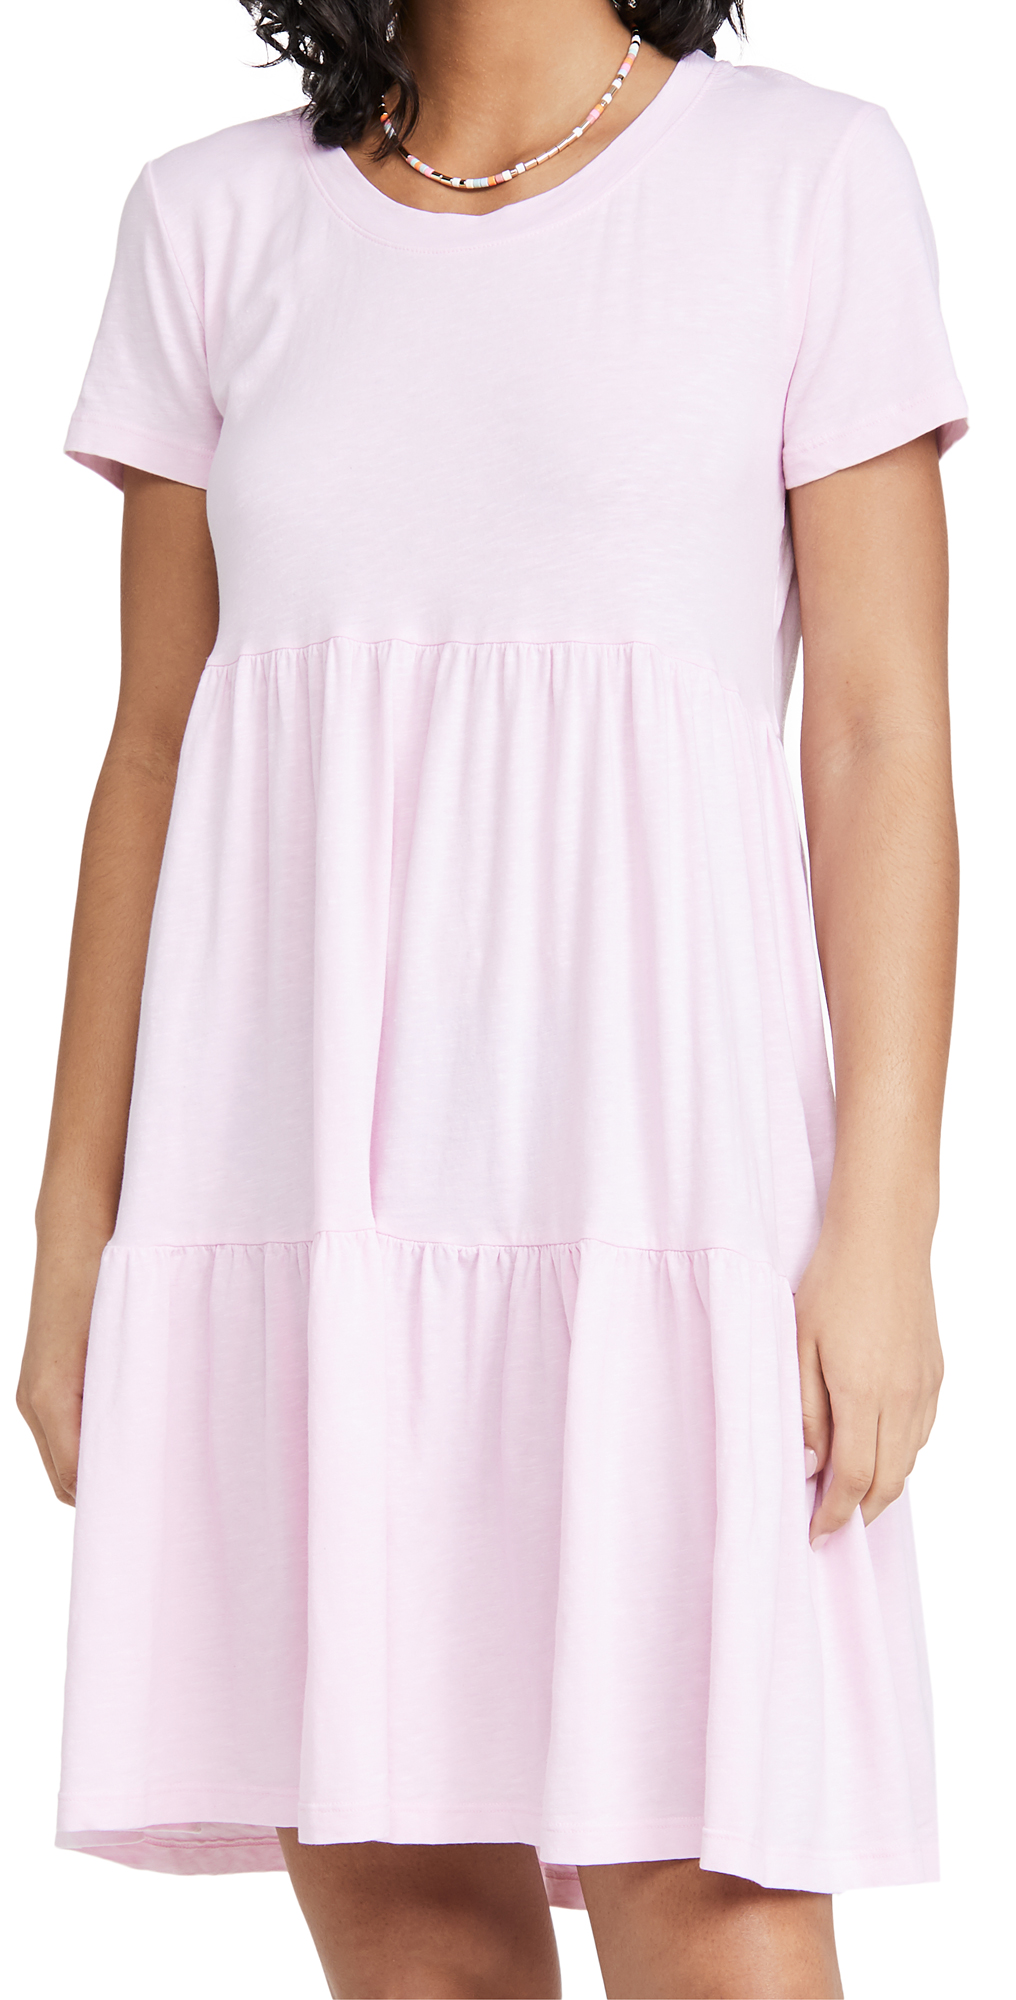 SUNDRY Ruffle Dress